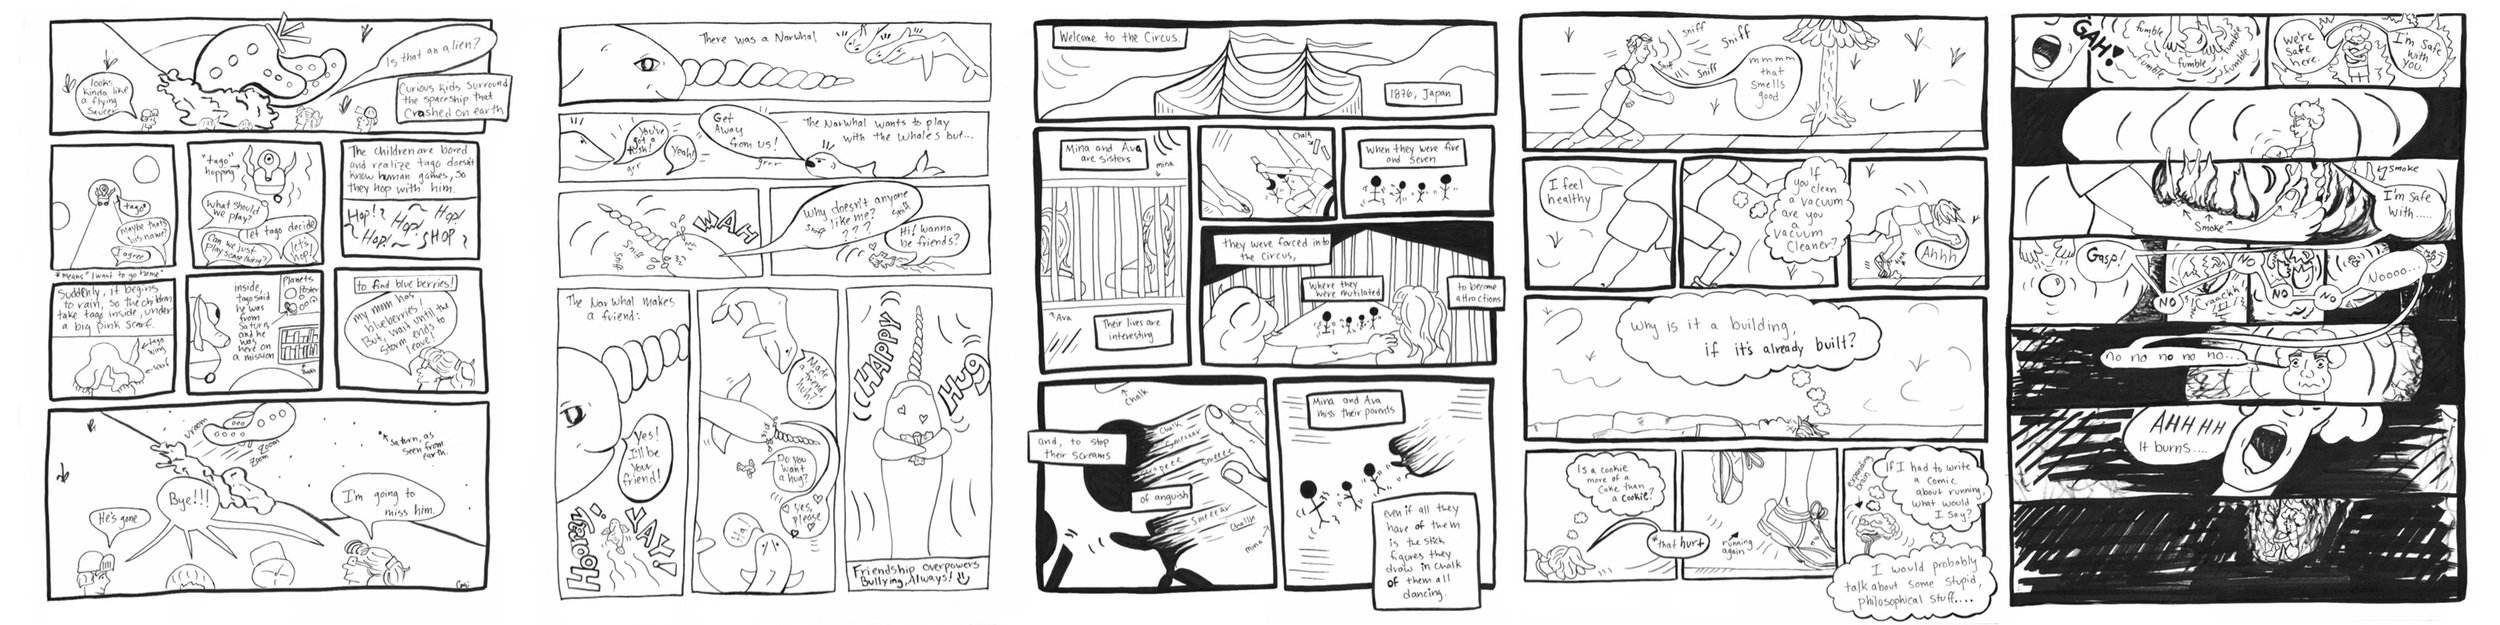 (Above are collaboration comics that I (Cari) drew from scripts written by my students. The students writing these scripts are roughly aged 8 to 17.)